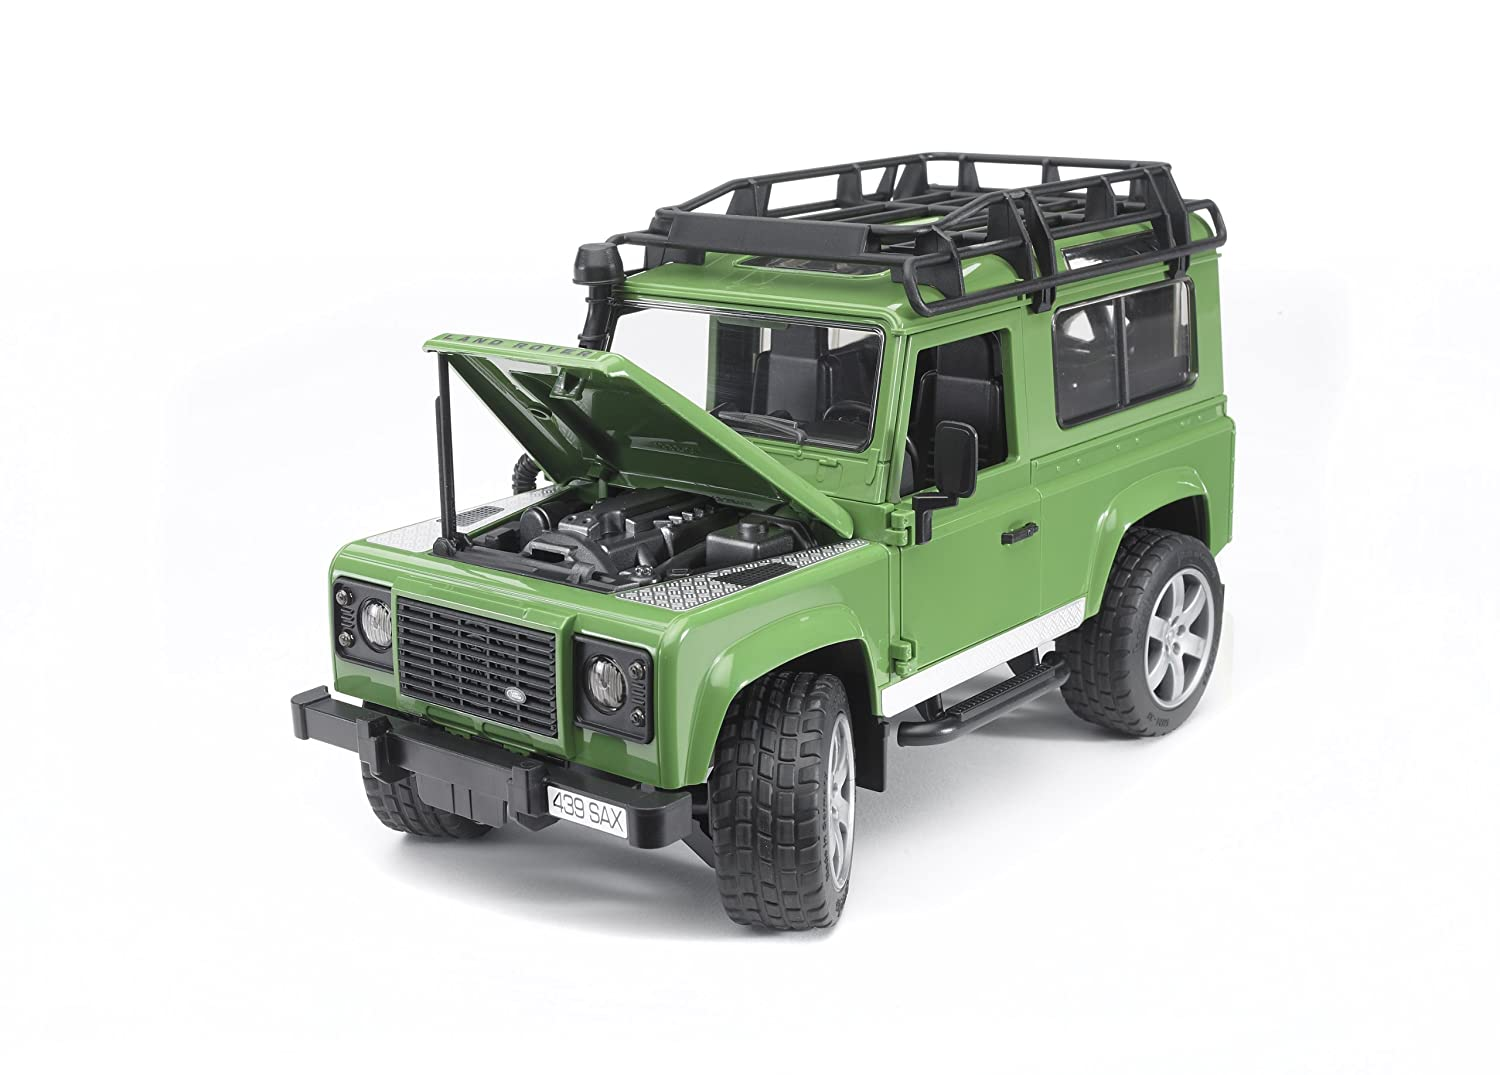 Bruder Land Rover Defender Station Wagon Die Cast Toy Vehicles Coupling Amazon Canada